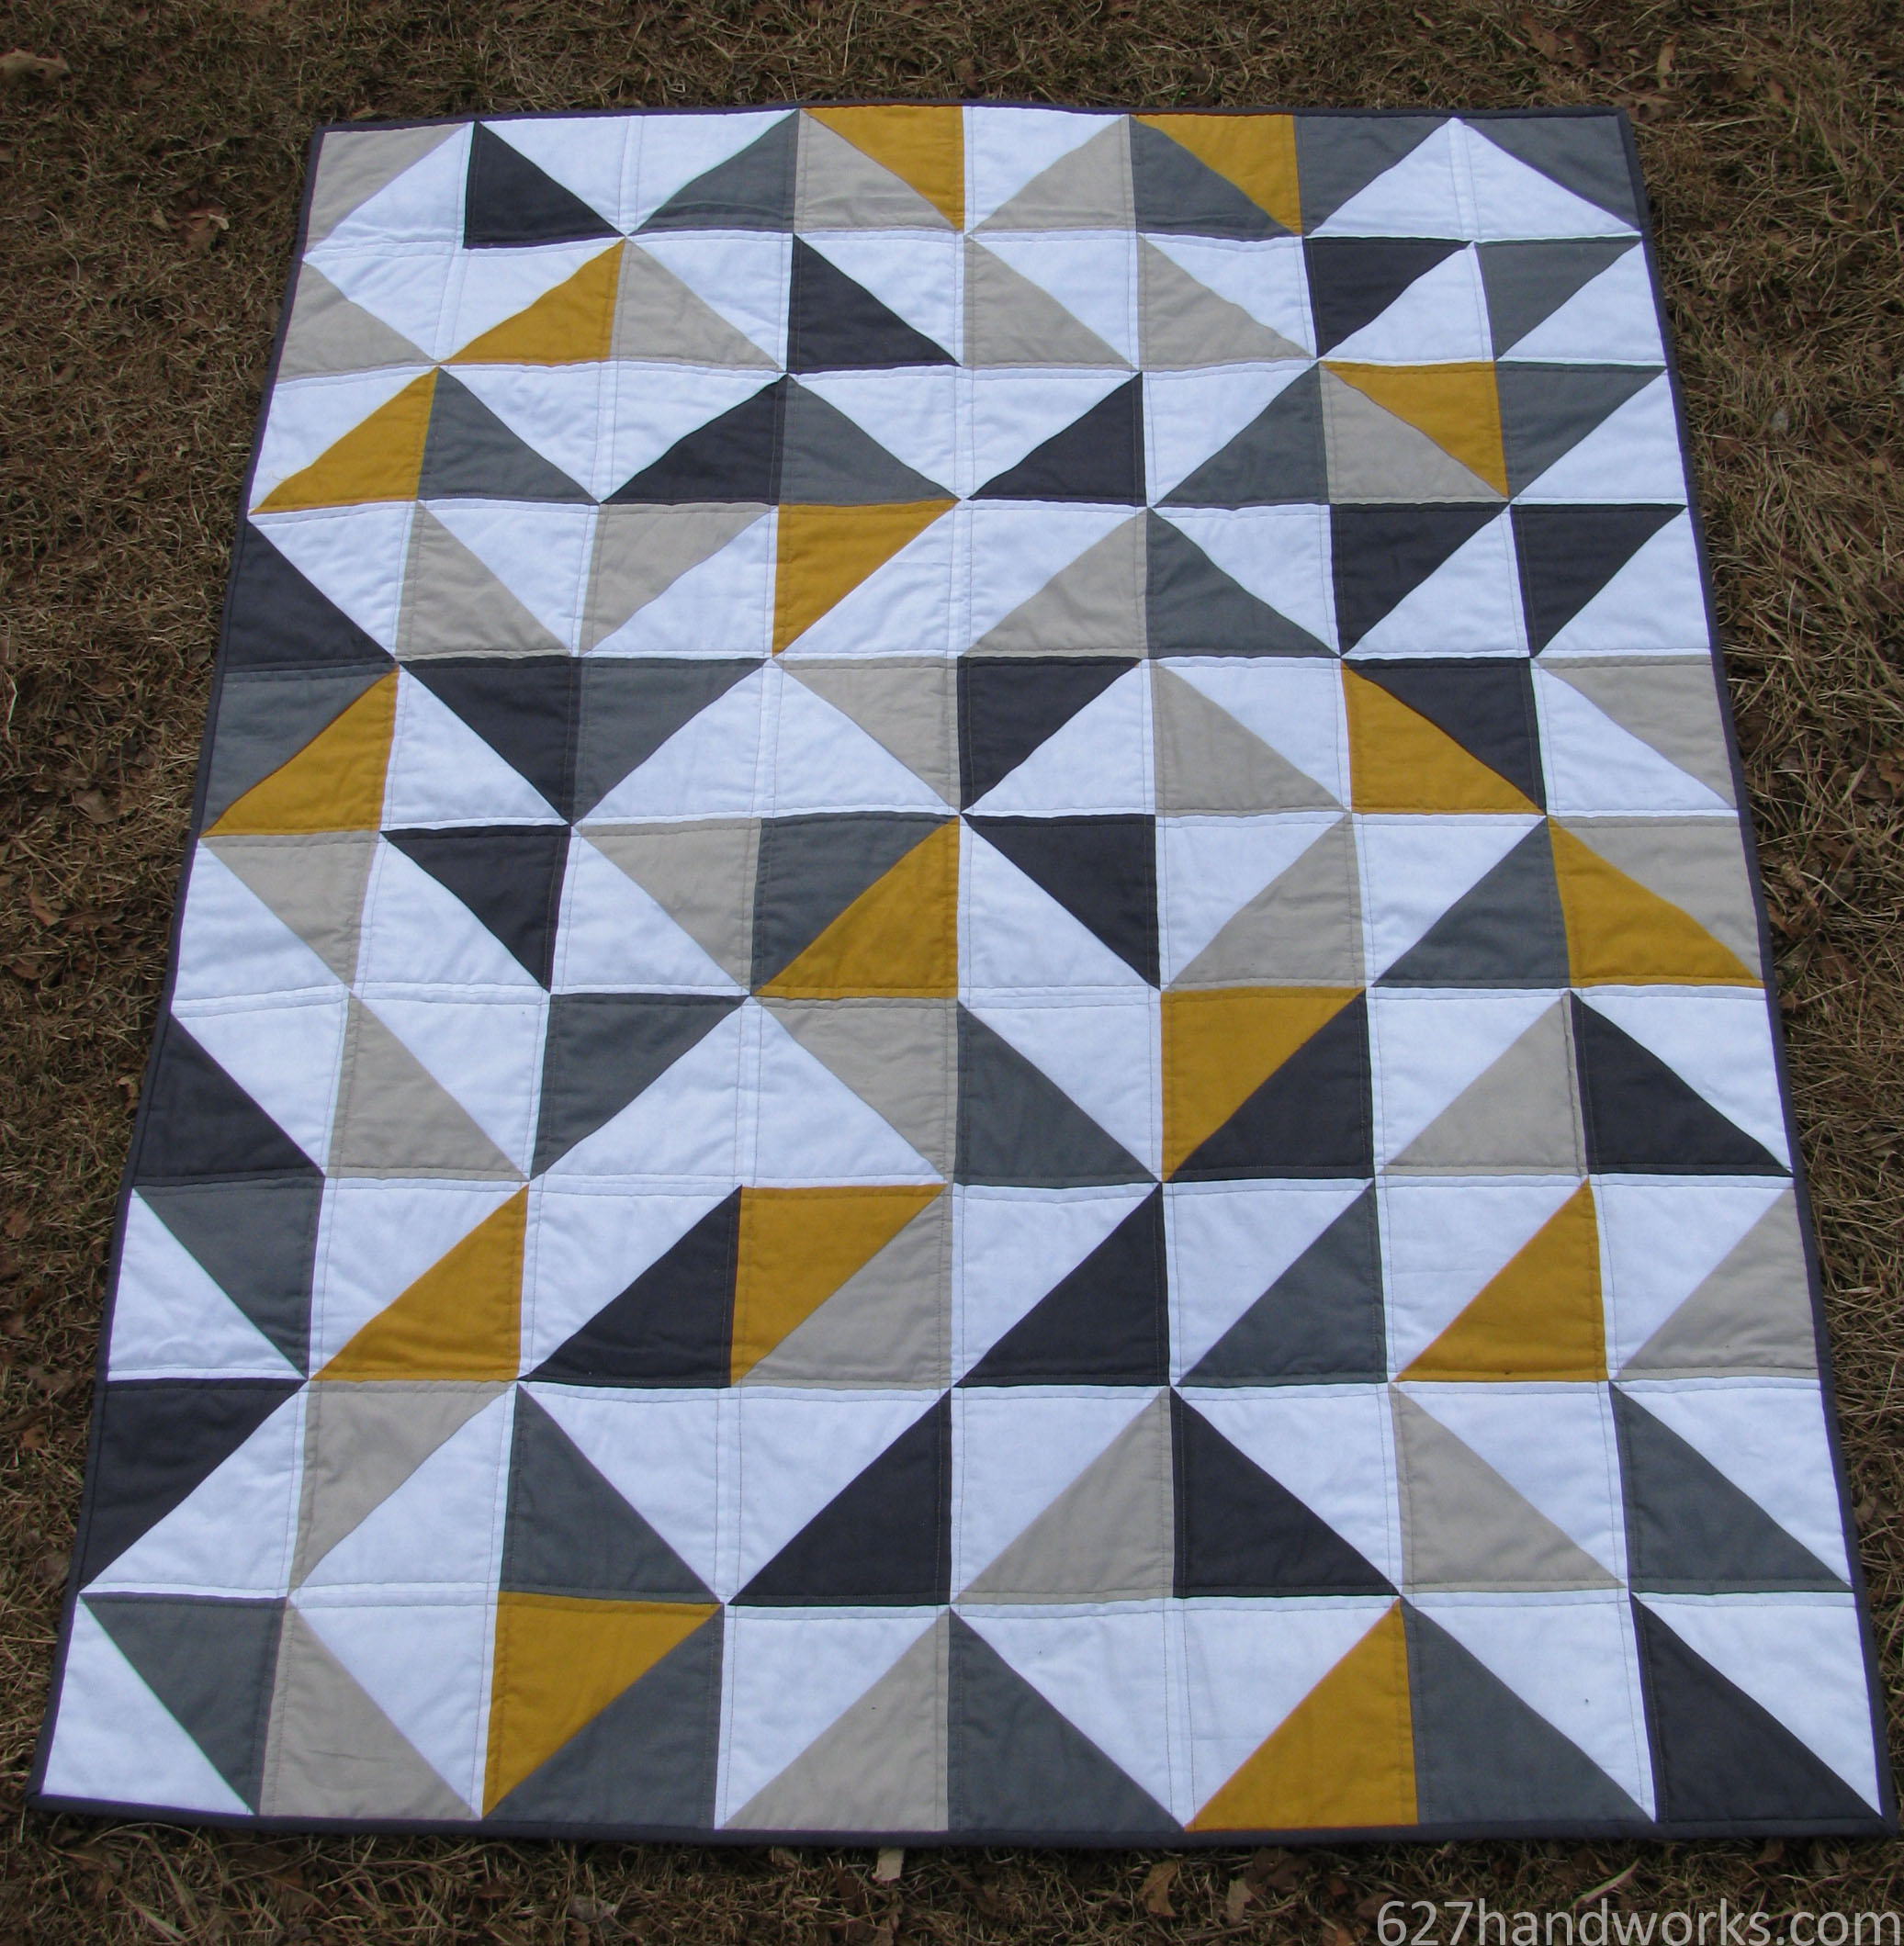 Quilt Designs With Triangles : 627handworks triangle quilt